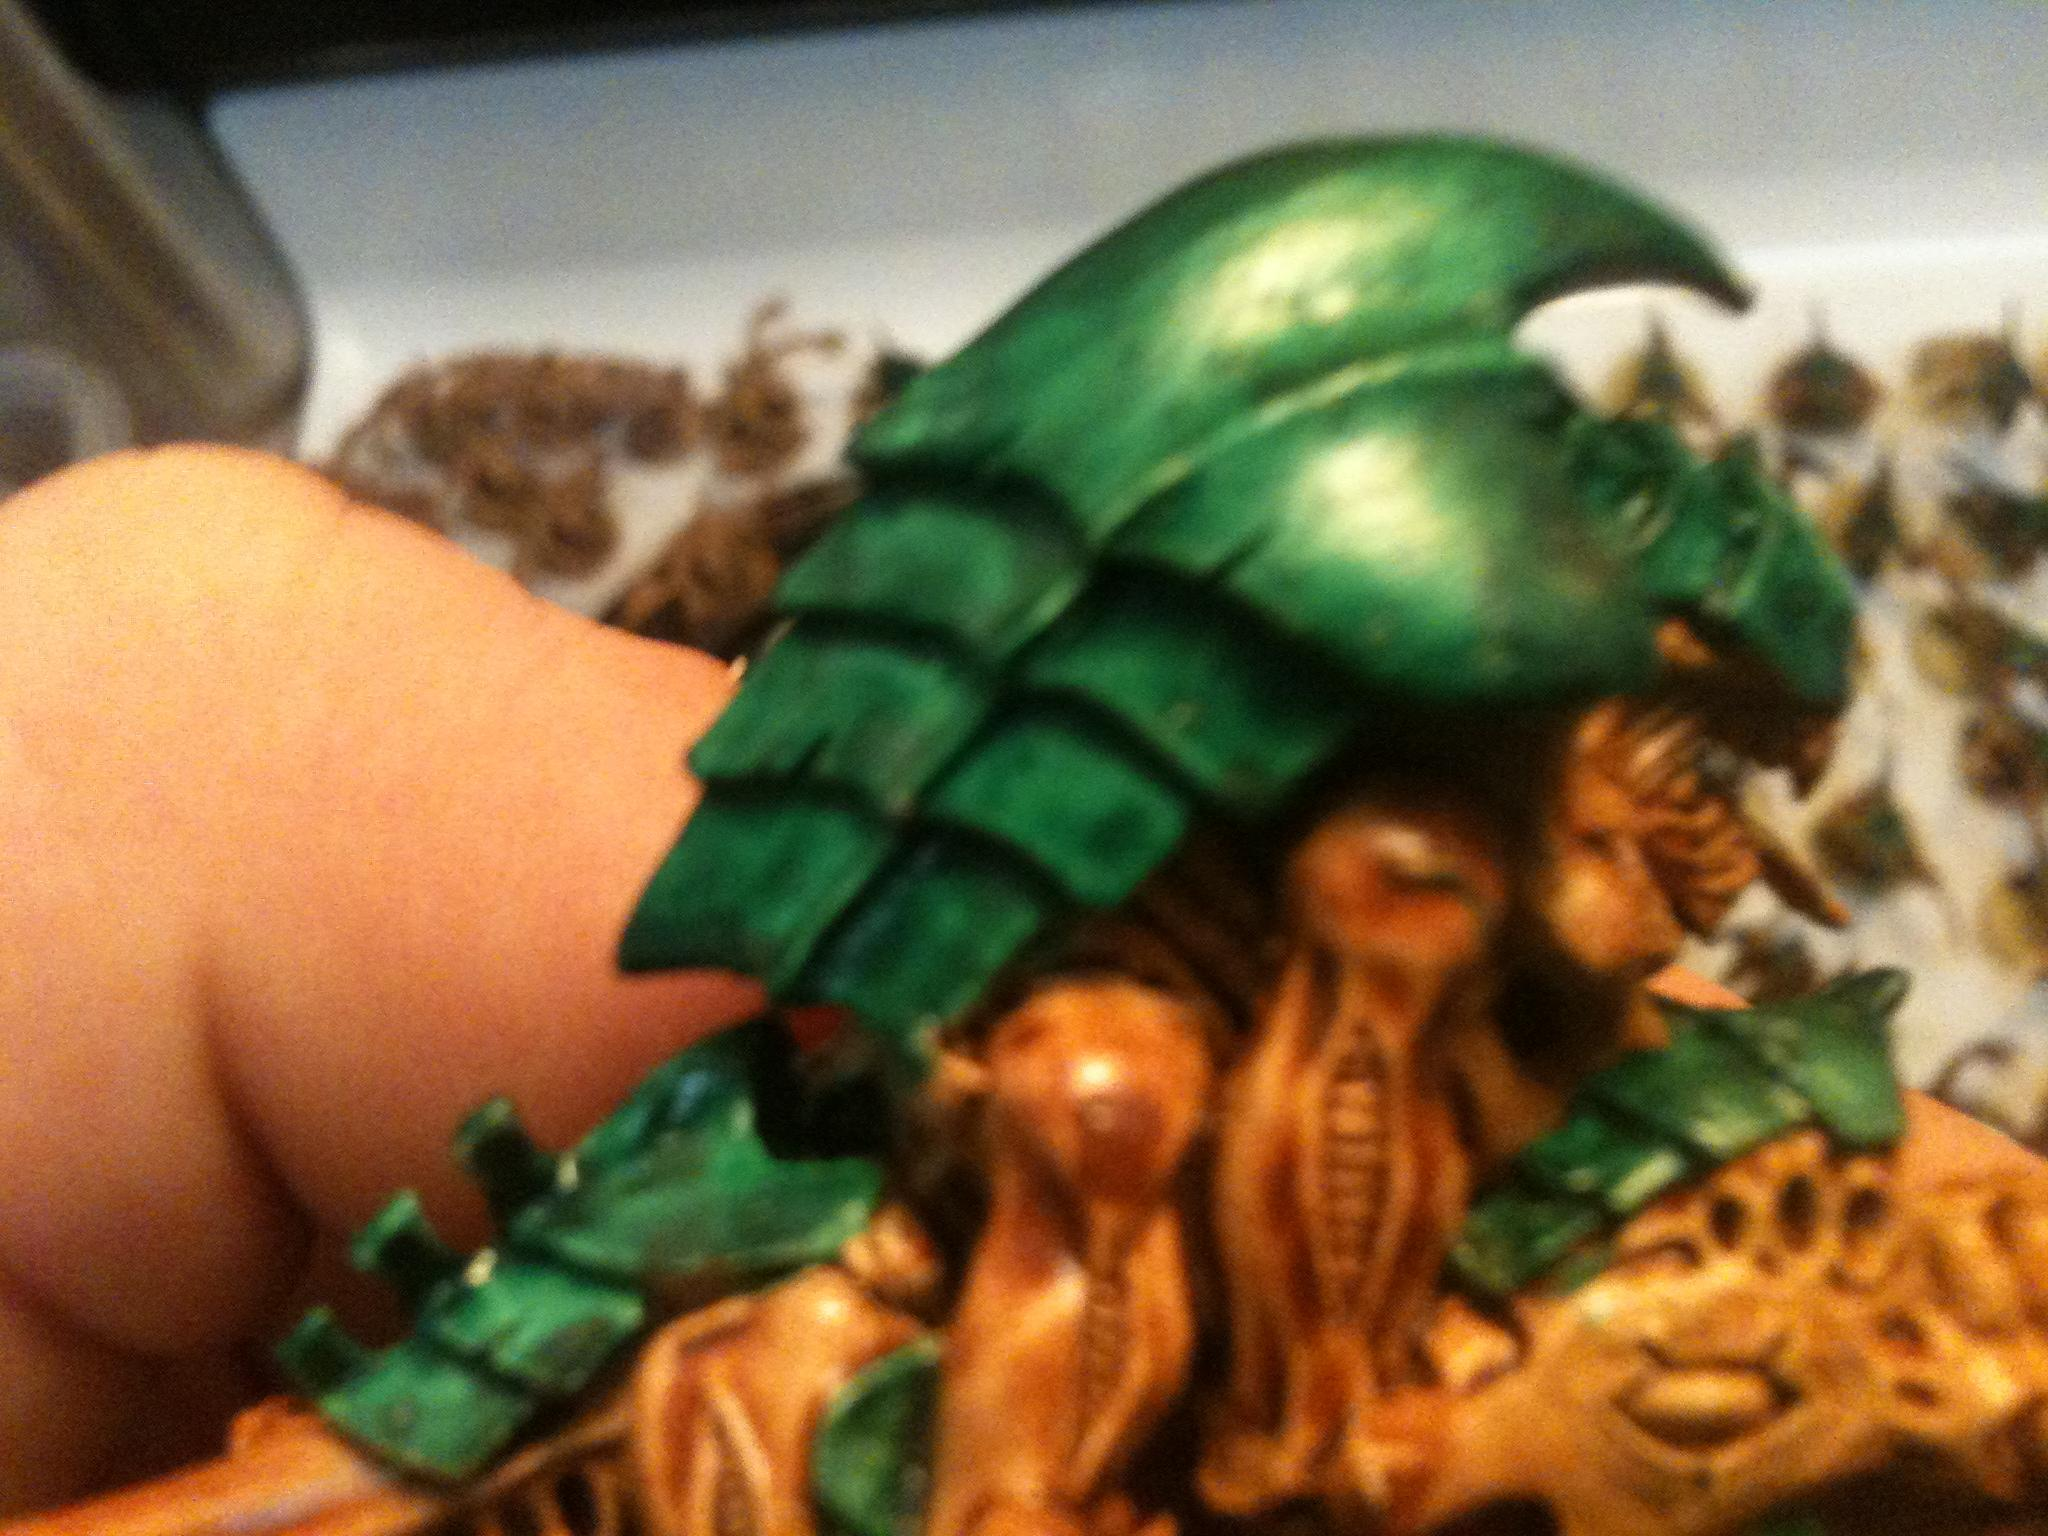 Here it is on a hive guard for more area